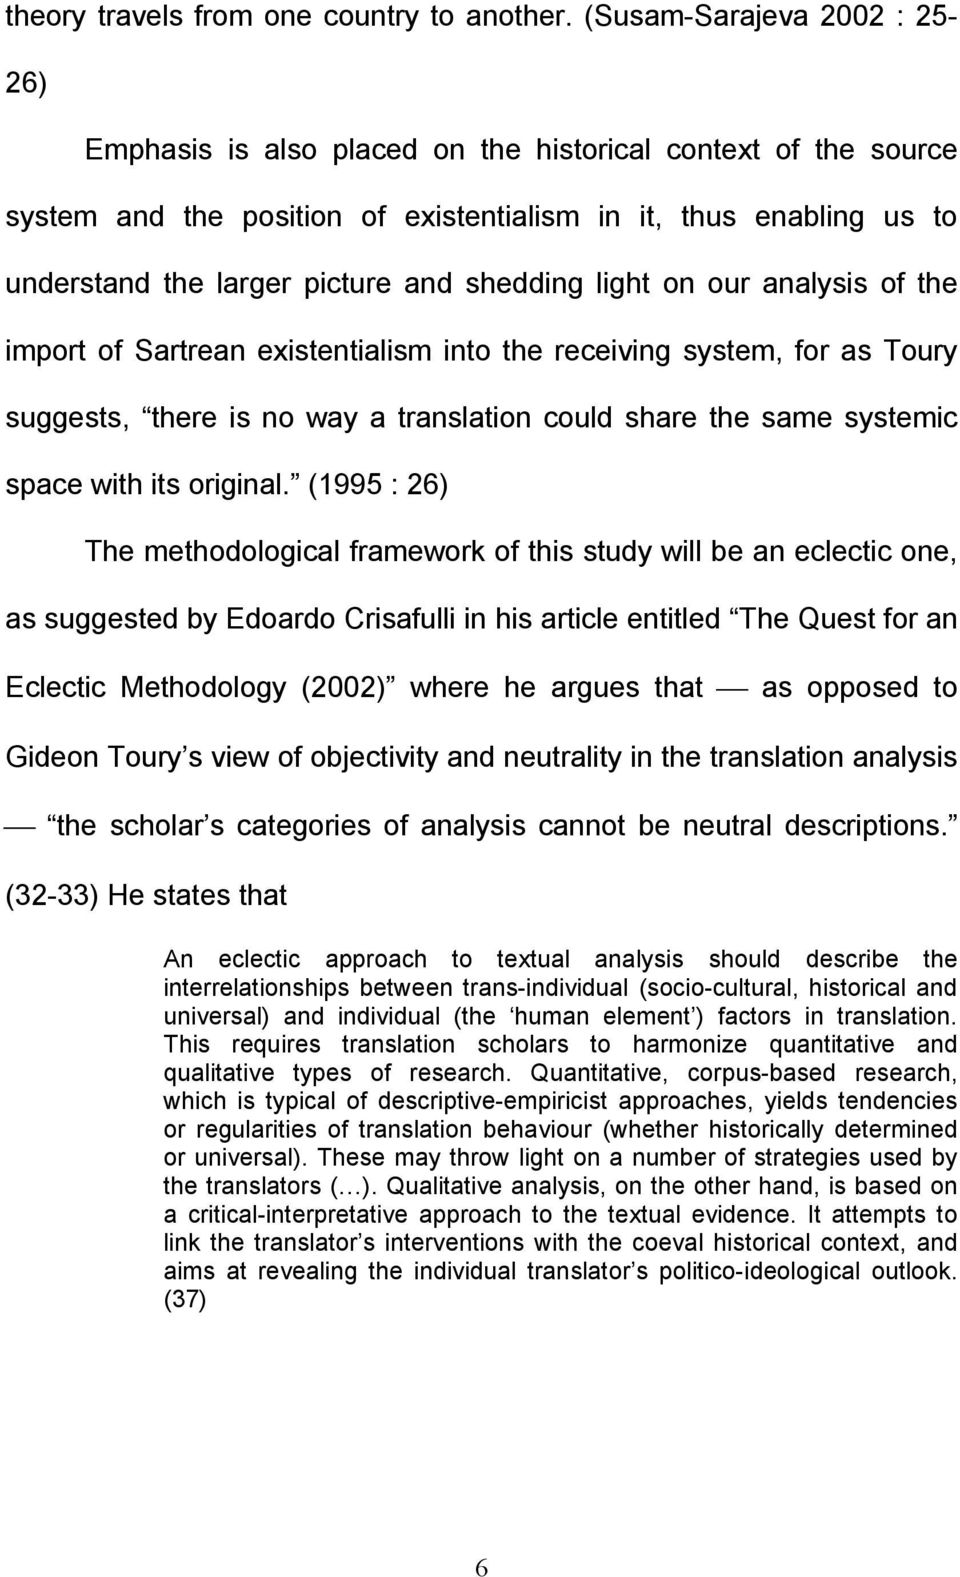 shedding light on our analysis of the import of Sartrean existentialism into the receiving system, for as Toury suggests, there is no way a translation could share the same systemic space with its